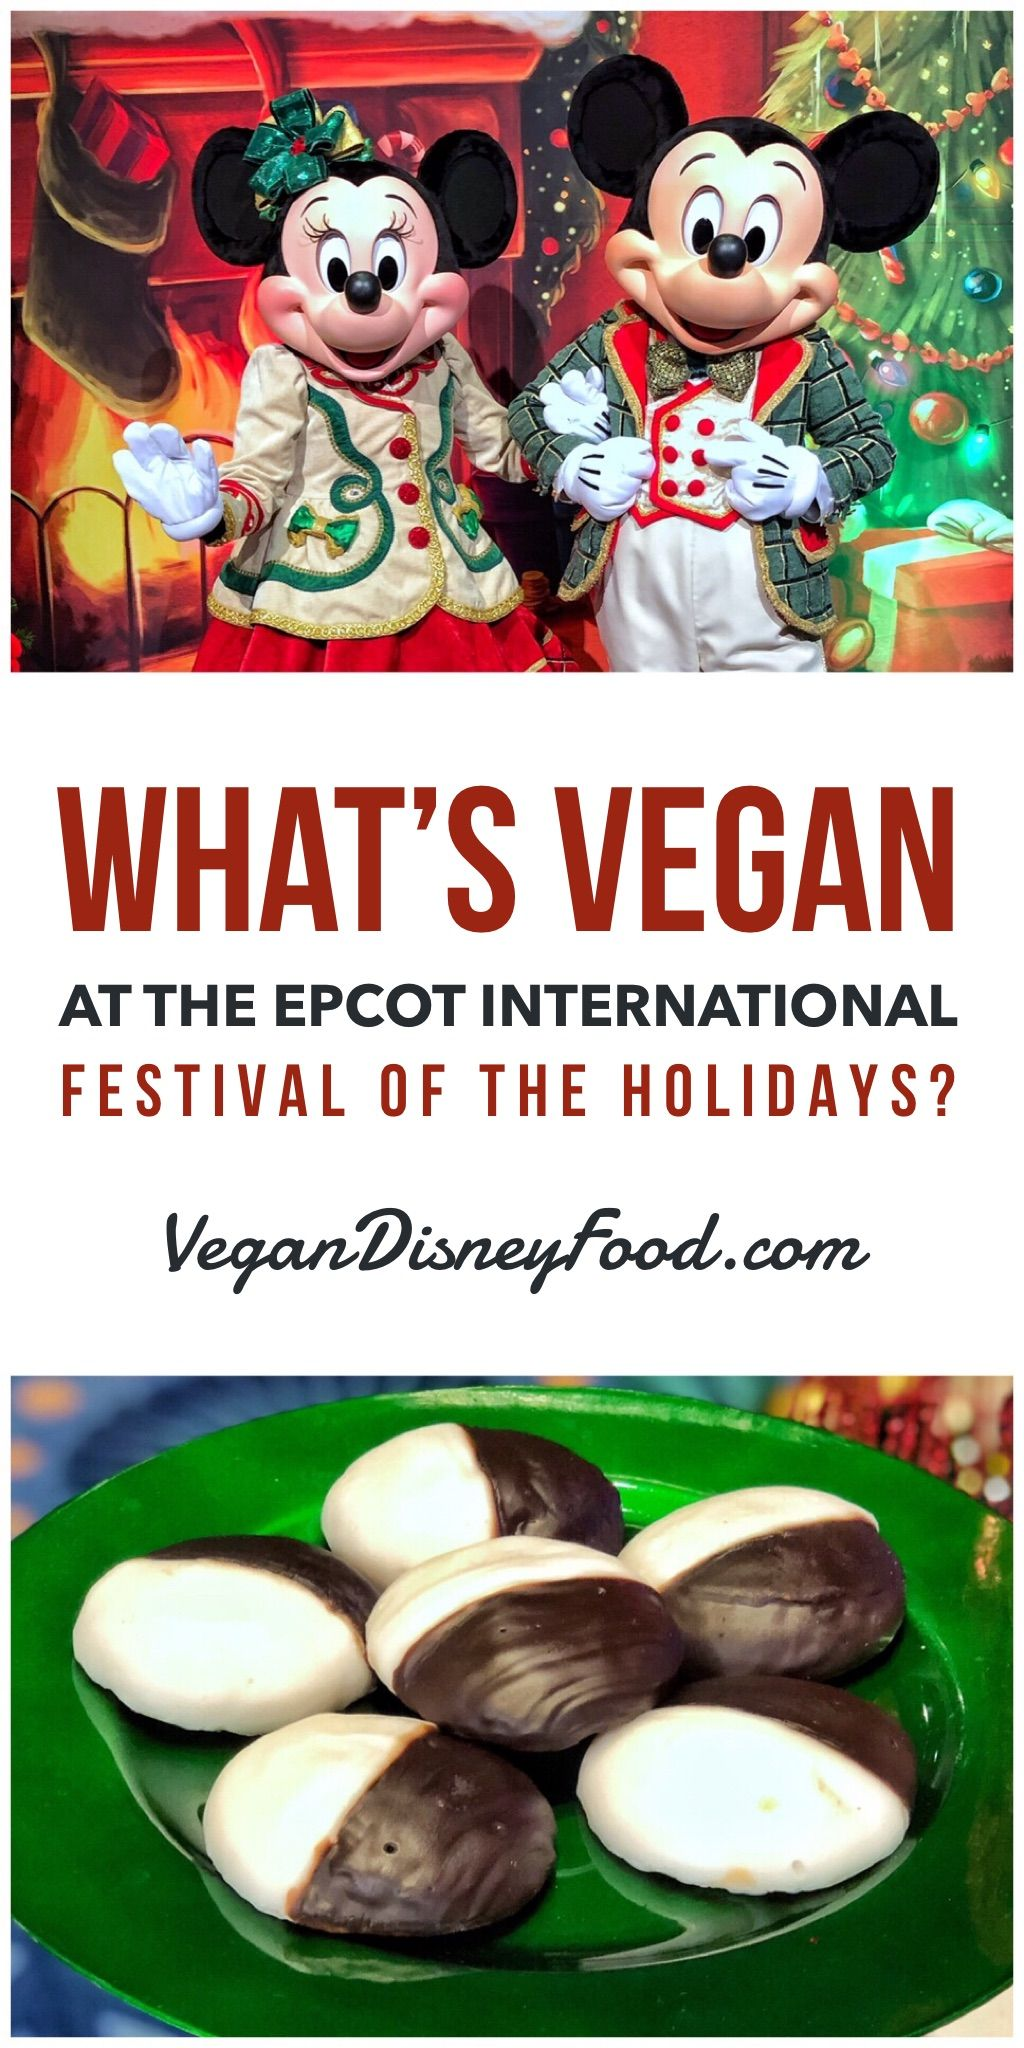 What's Vegan at the Epcot International Festival of the